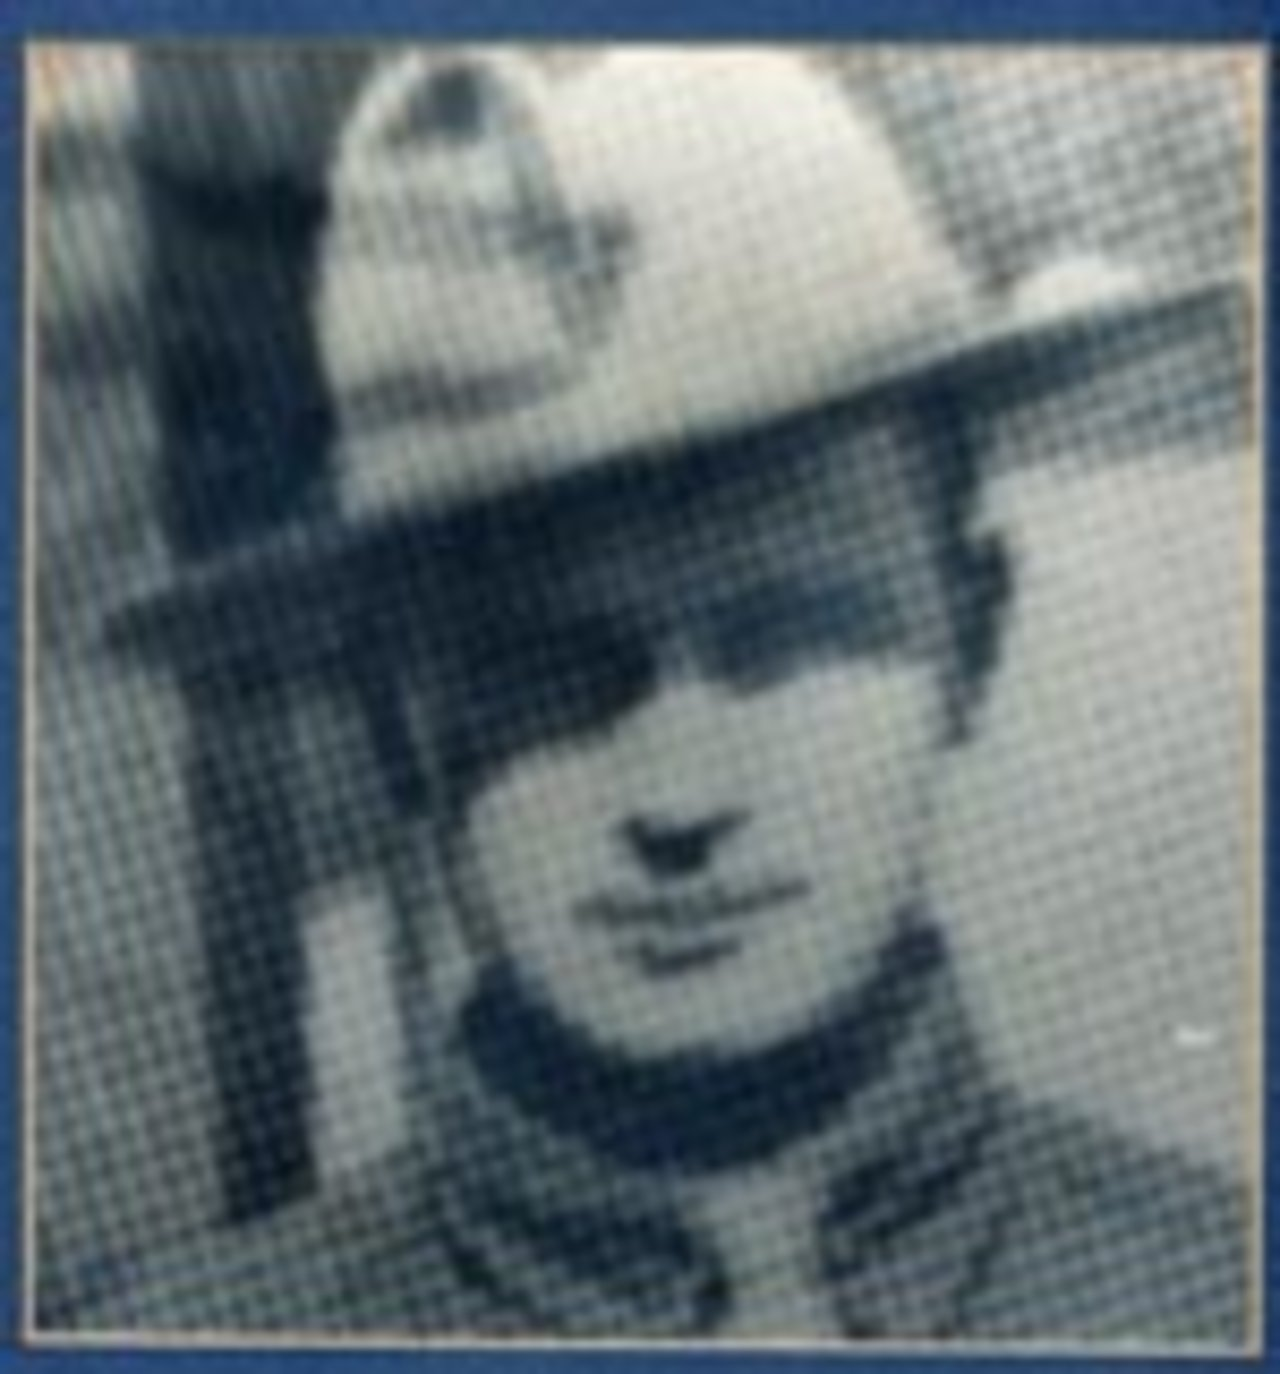 Sergeant Homer J. Harrison, 41, Commander of the Castile area of Wyoming County, died by drowning June 19, 1933. Sergeant Harrison slipped beneath the surface of Silver Lake when his small boat overturned. His body was recovered an hour later.  Sergeant Harrison joined the State Police at Batavia in September 1921 and was promoted to Sergeant and transferred to Castile in 1925.